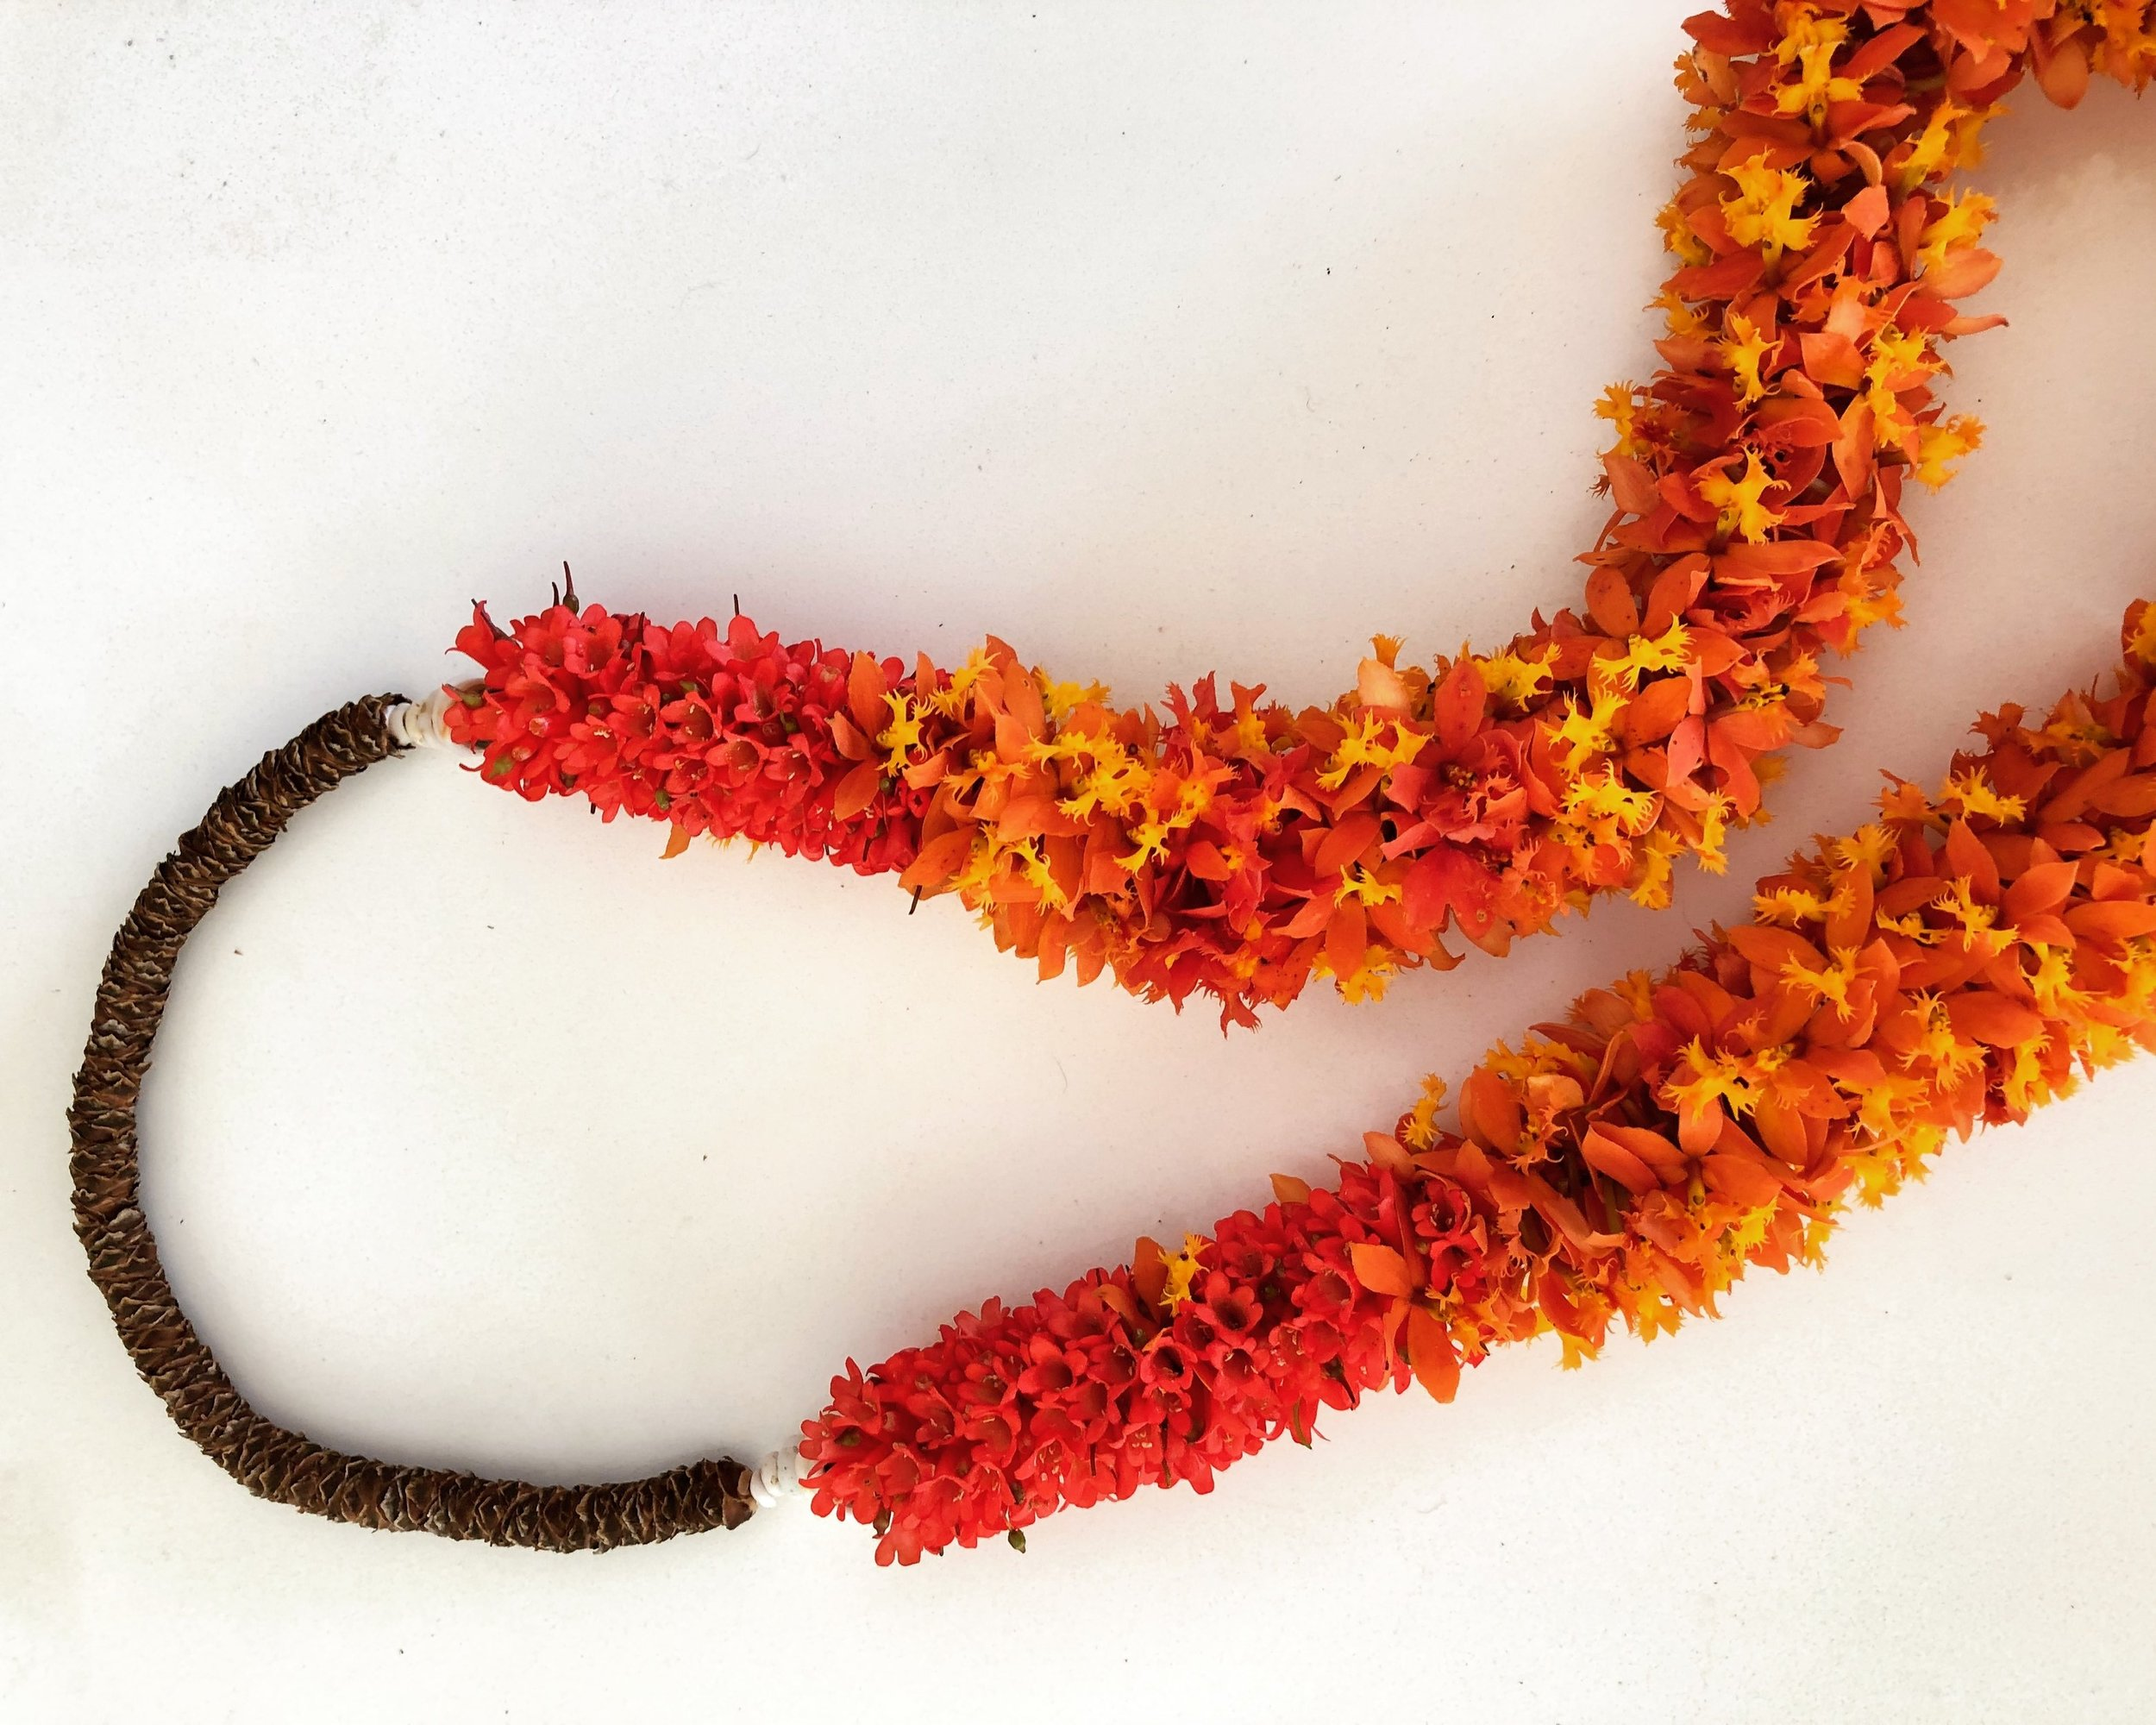 Upcountry Maui is scattered with wild Orange Epidendrum Orchids, blooming most of the year, they offer a wonderful color and girth to these lei. In combination with the Firecracker plant, another Maui staple, and a calyx neckpiece from the florescent of the Queen Palm.